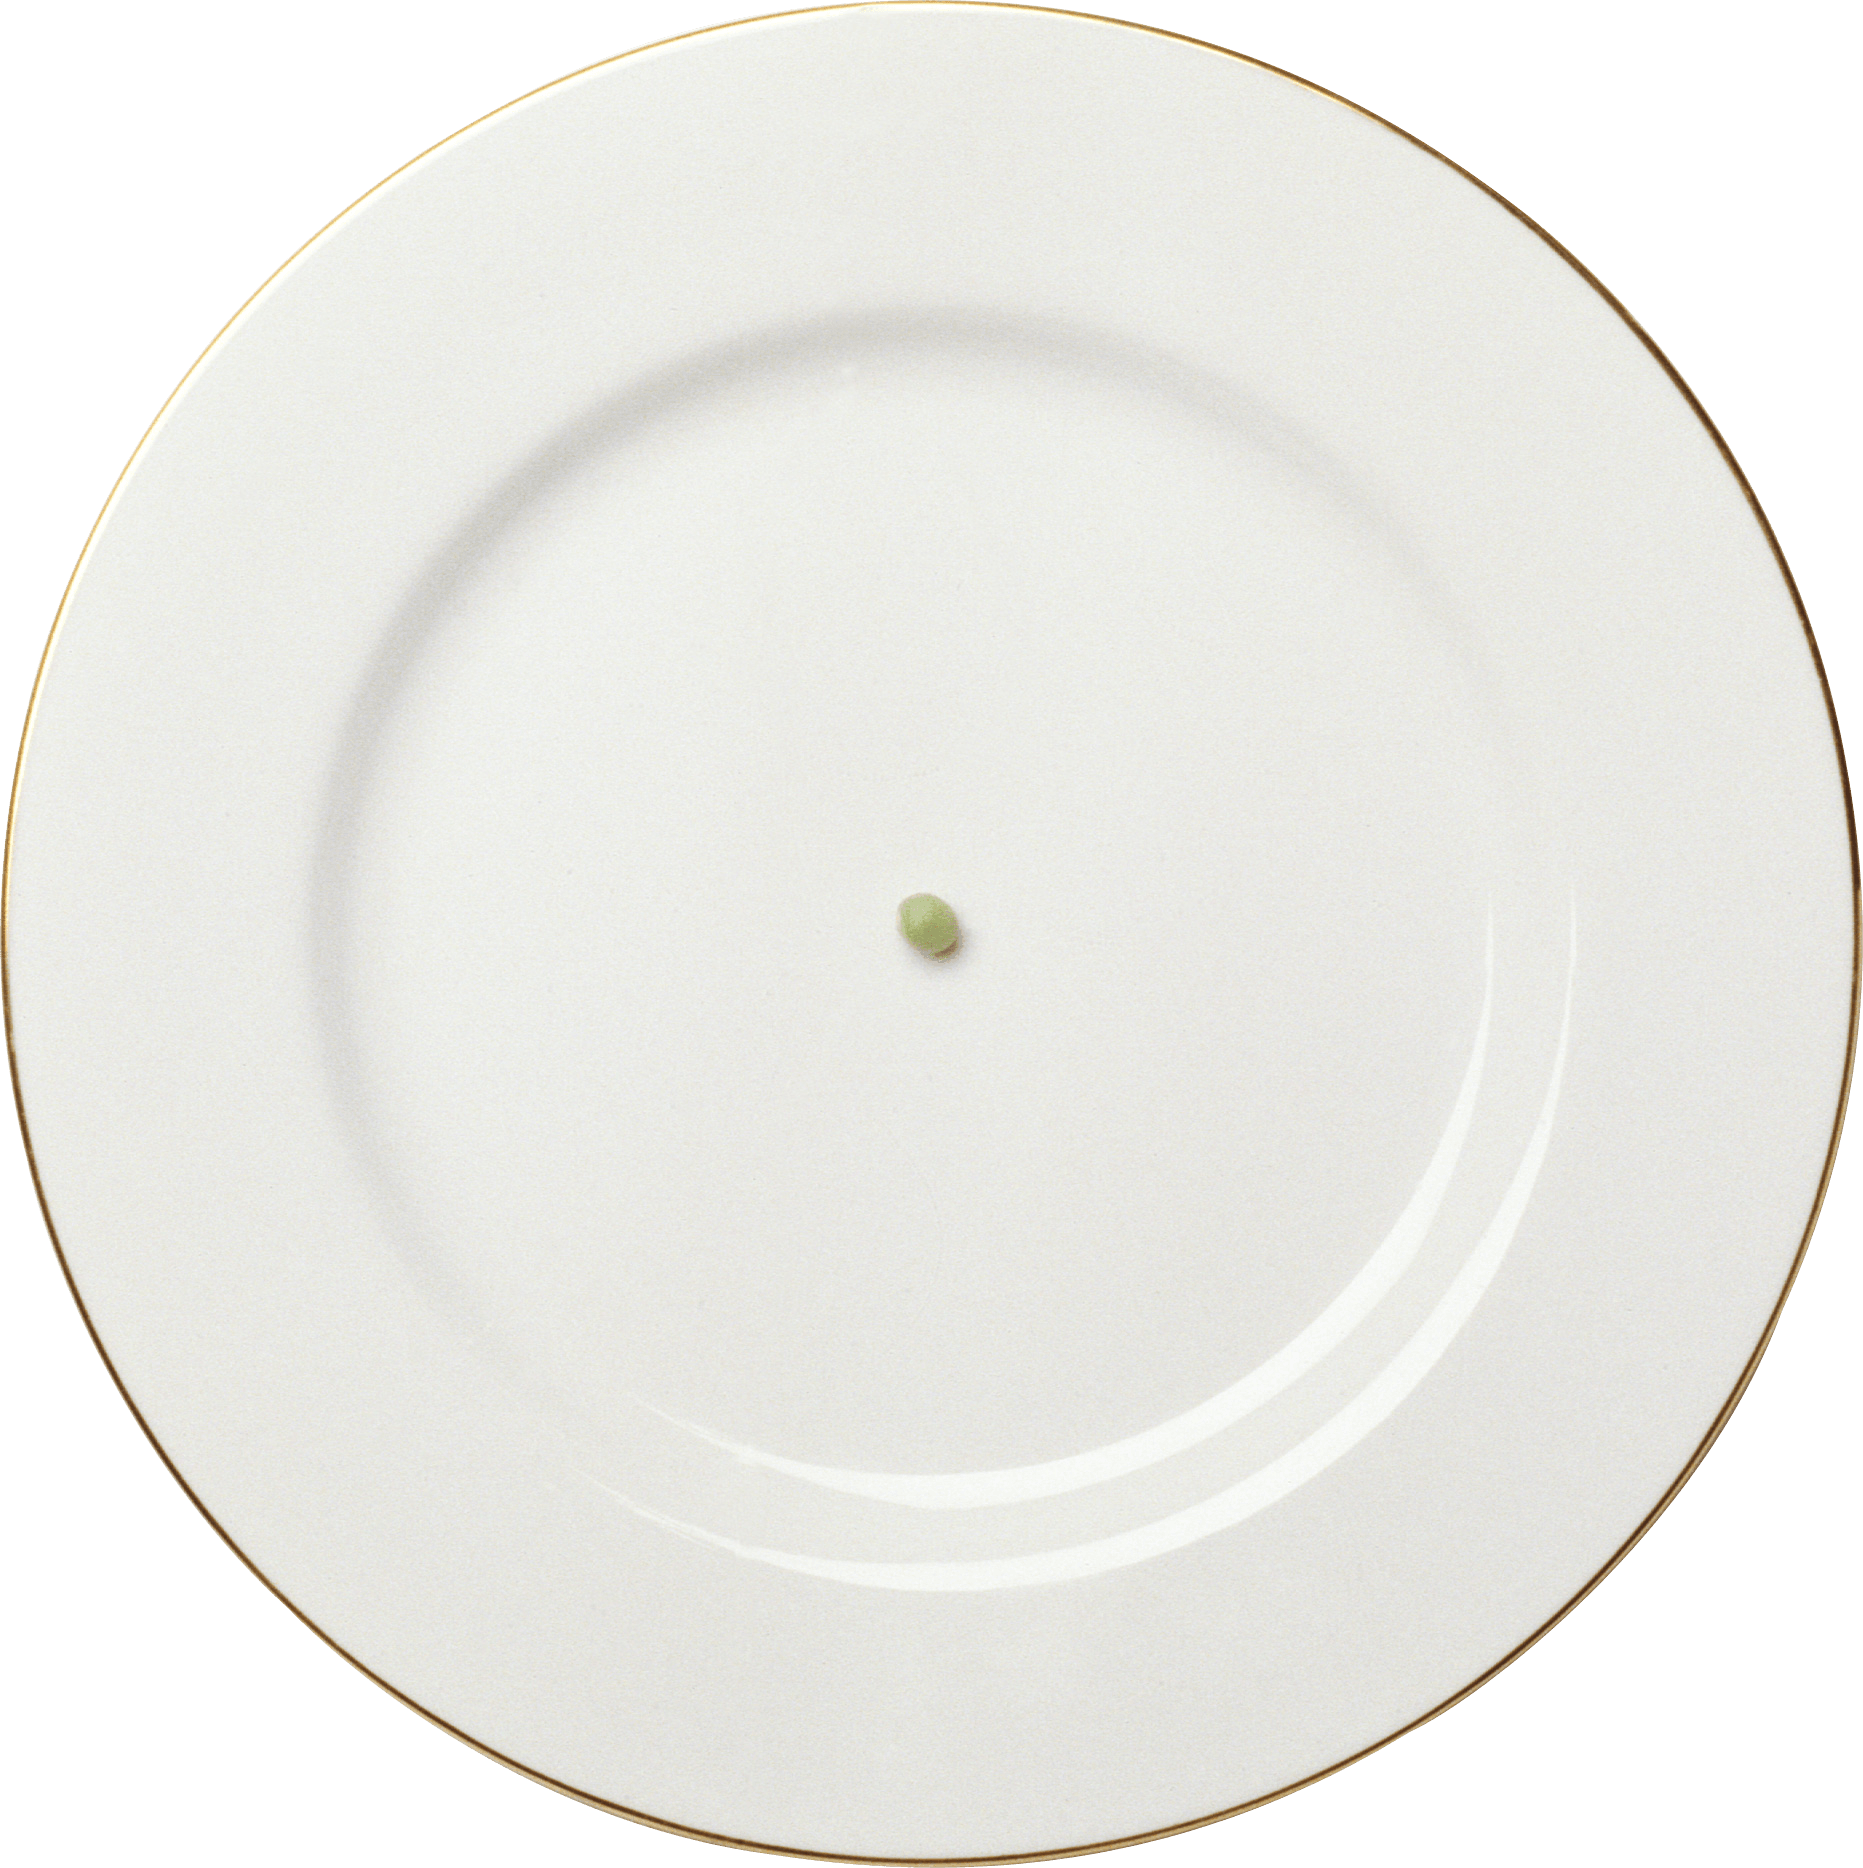 White Plate with Golden Frame PNG Image - PurePNG | Free ...